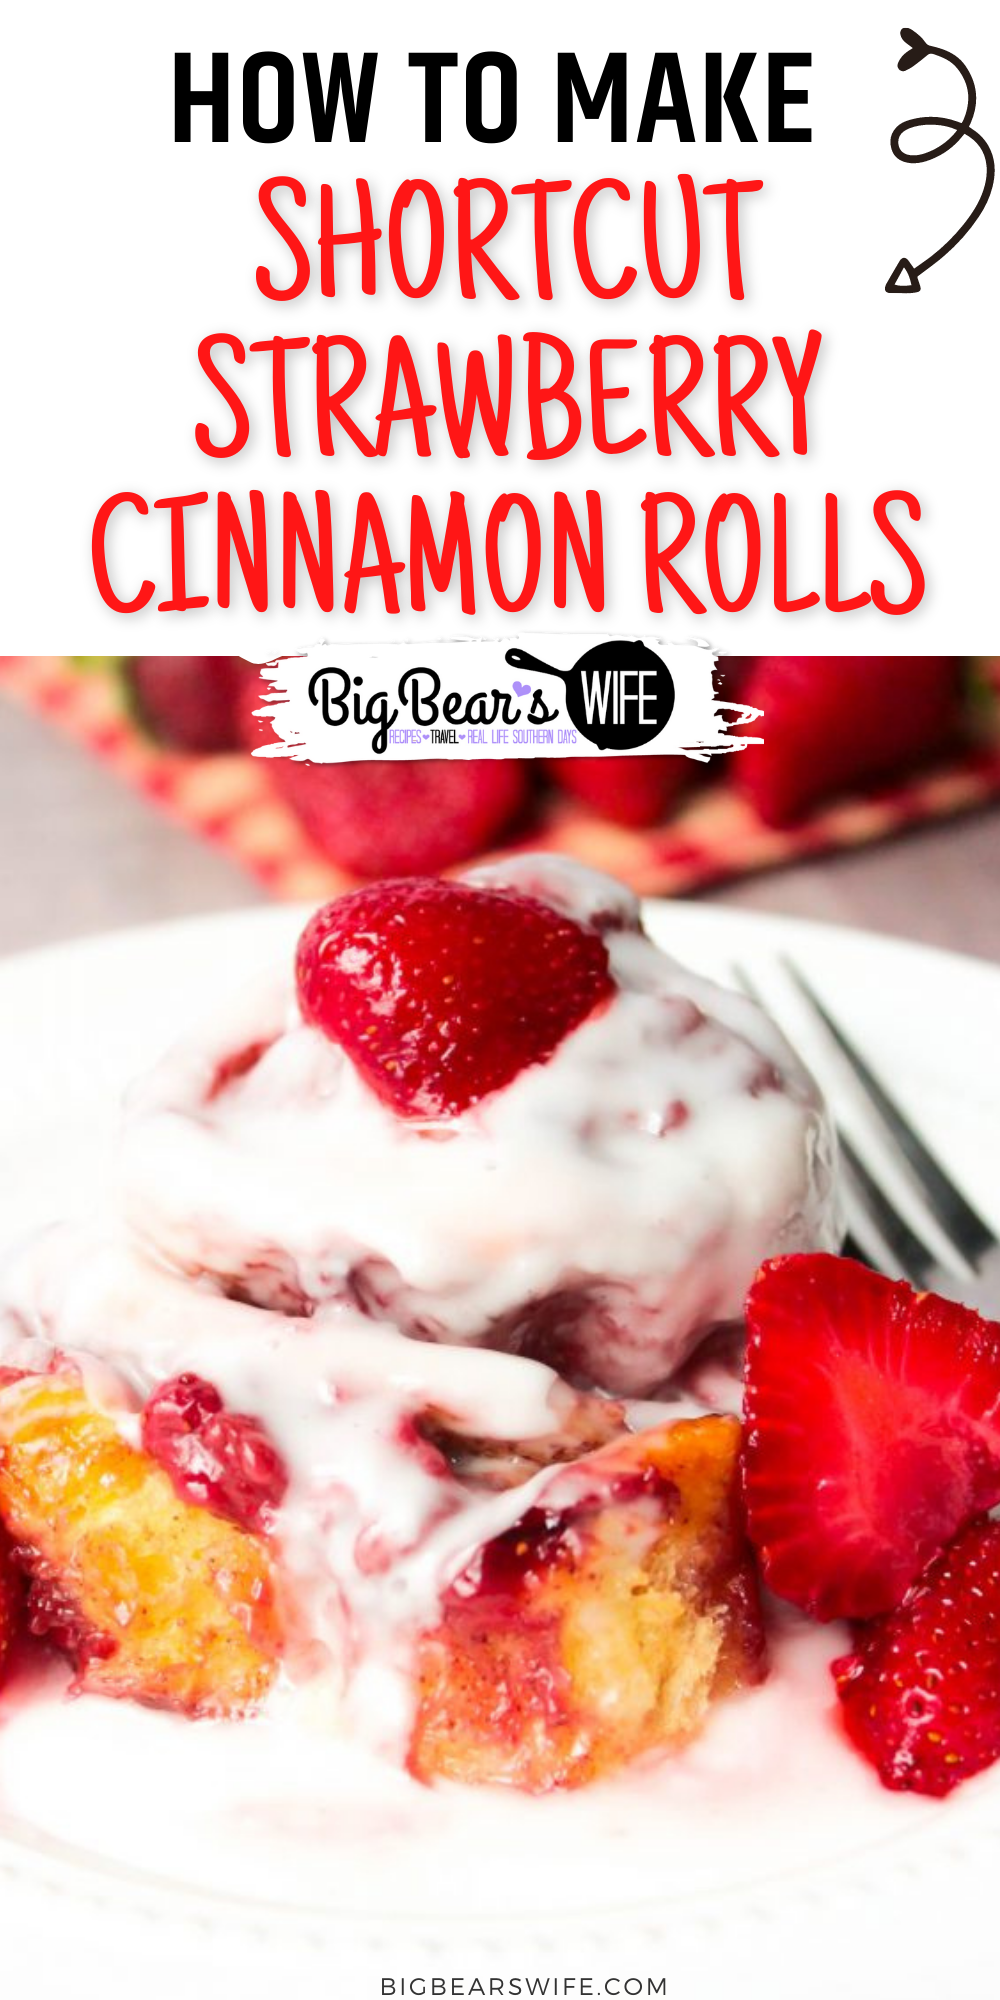 These Shortcut Strawberry Cinnamon Rolls are stuffed with summer ripe strawberries and make using refrigerated cinnamon roll dough for a shortcut berry filled treat! via @bigbearswife